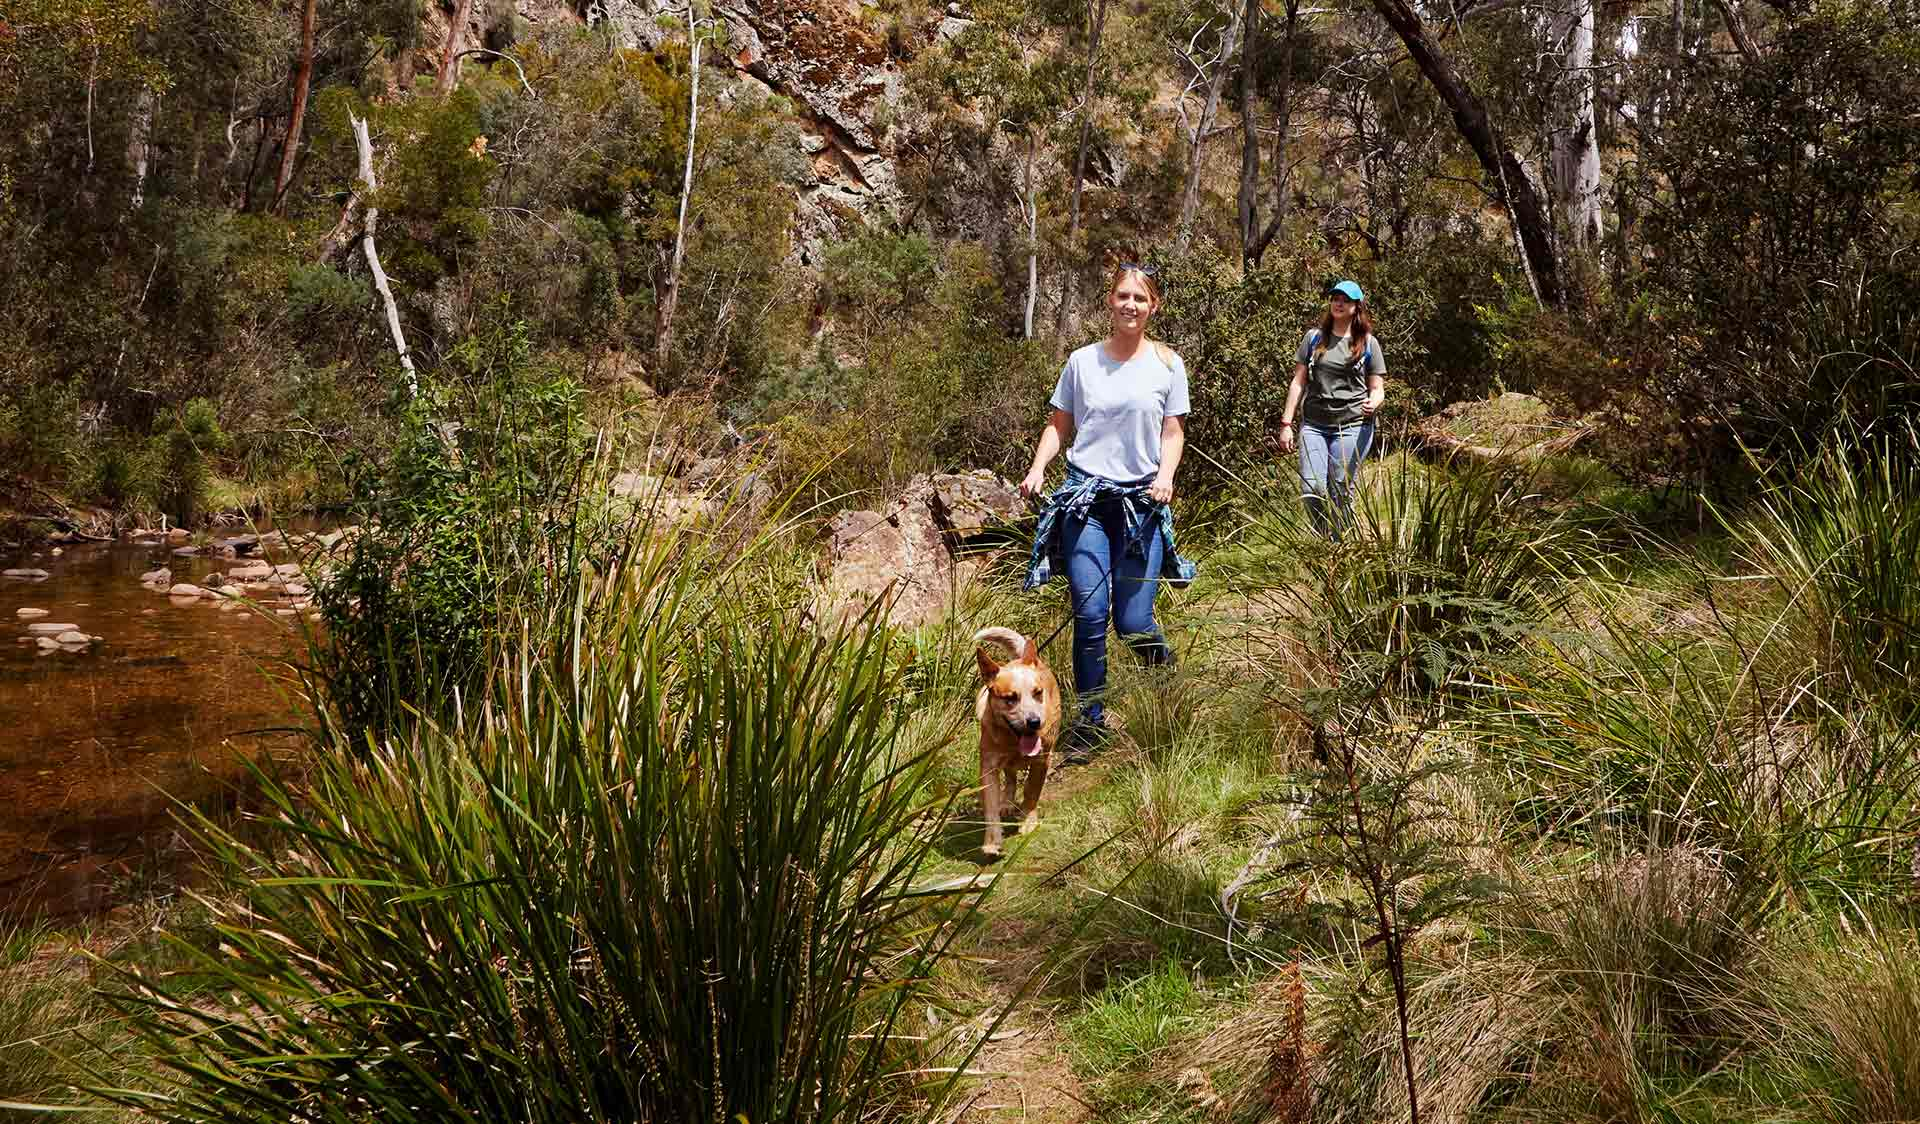 Two women walk an Australian Cattle Dog alongside a rocky creek.